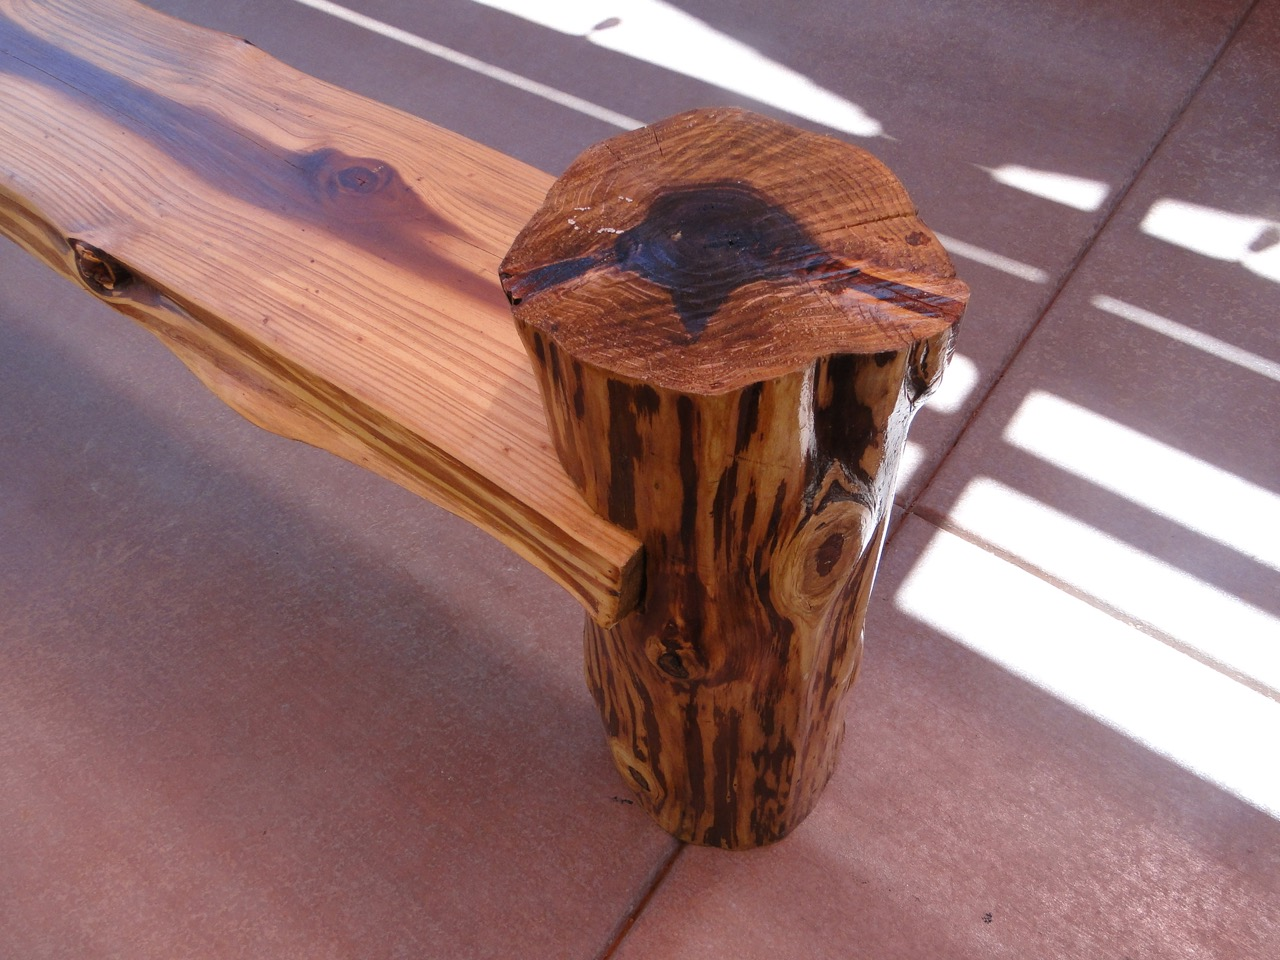 A1 Stump Reclaimed Furniture - 039